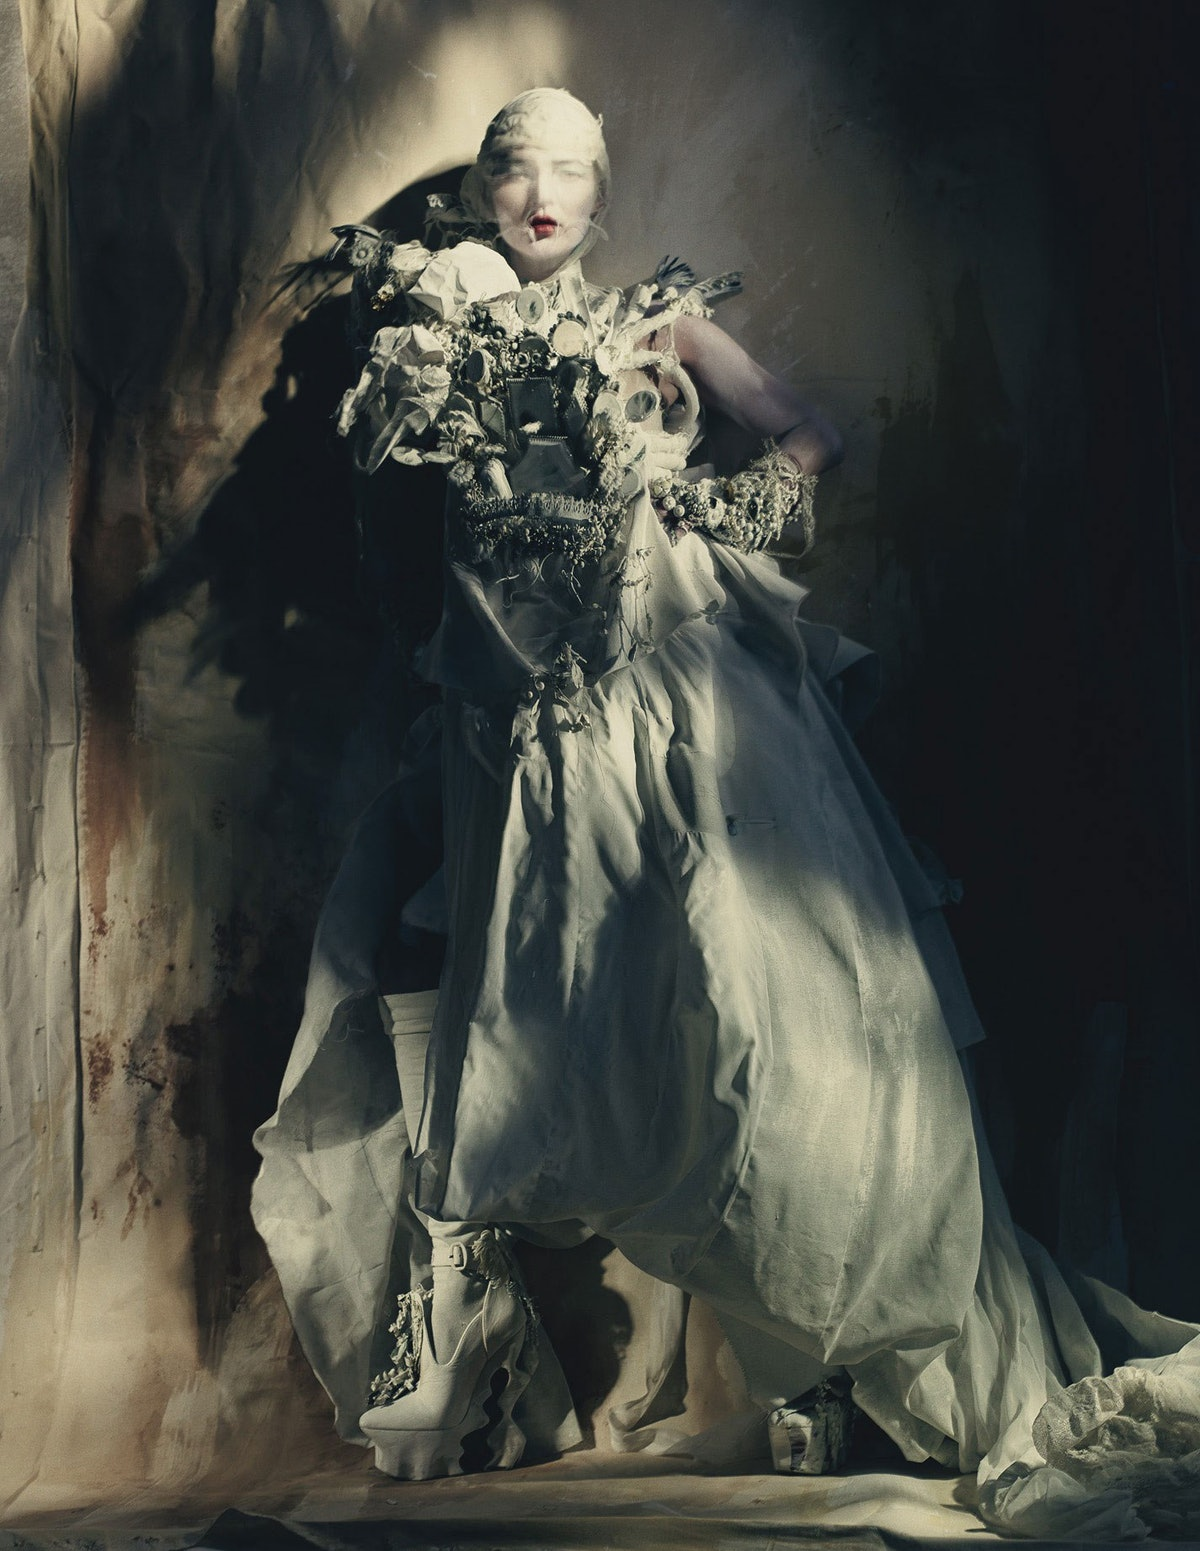 Kate-Moss-Painted-Lady-Paolo-Roversi-for-W-Magazine-2.jpg